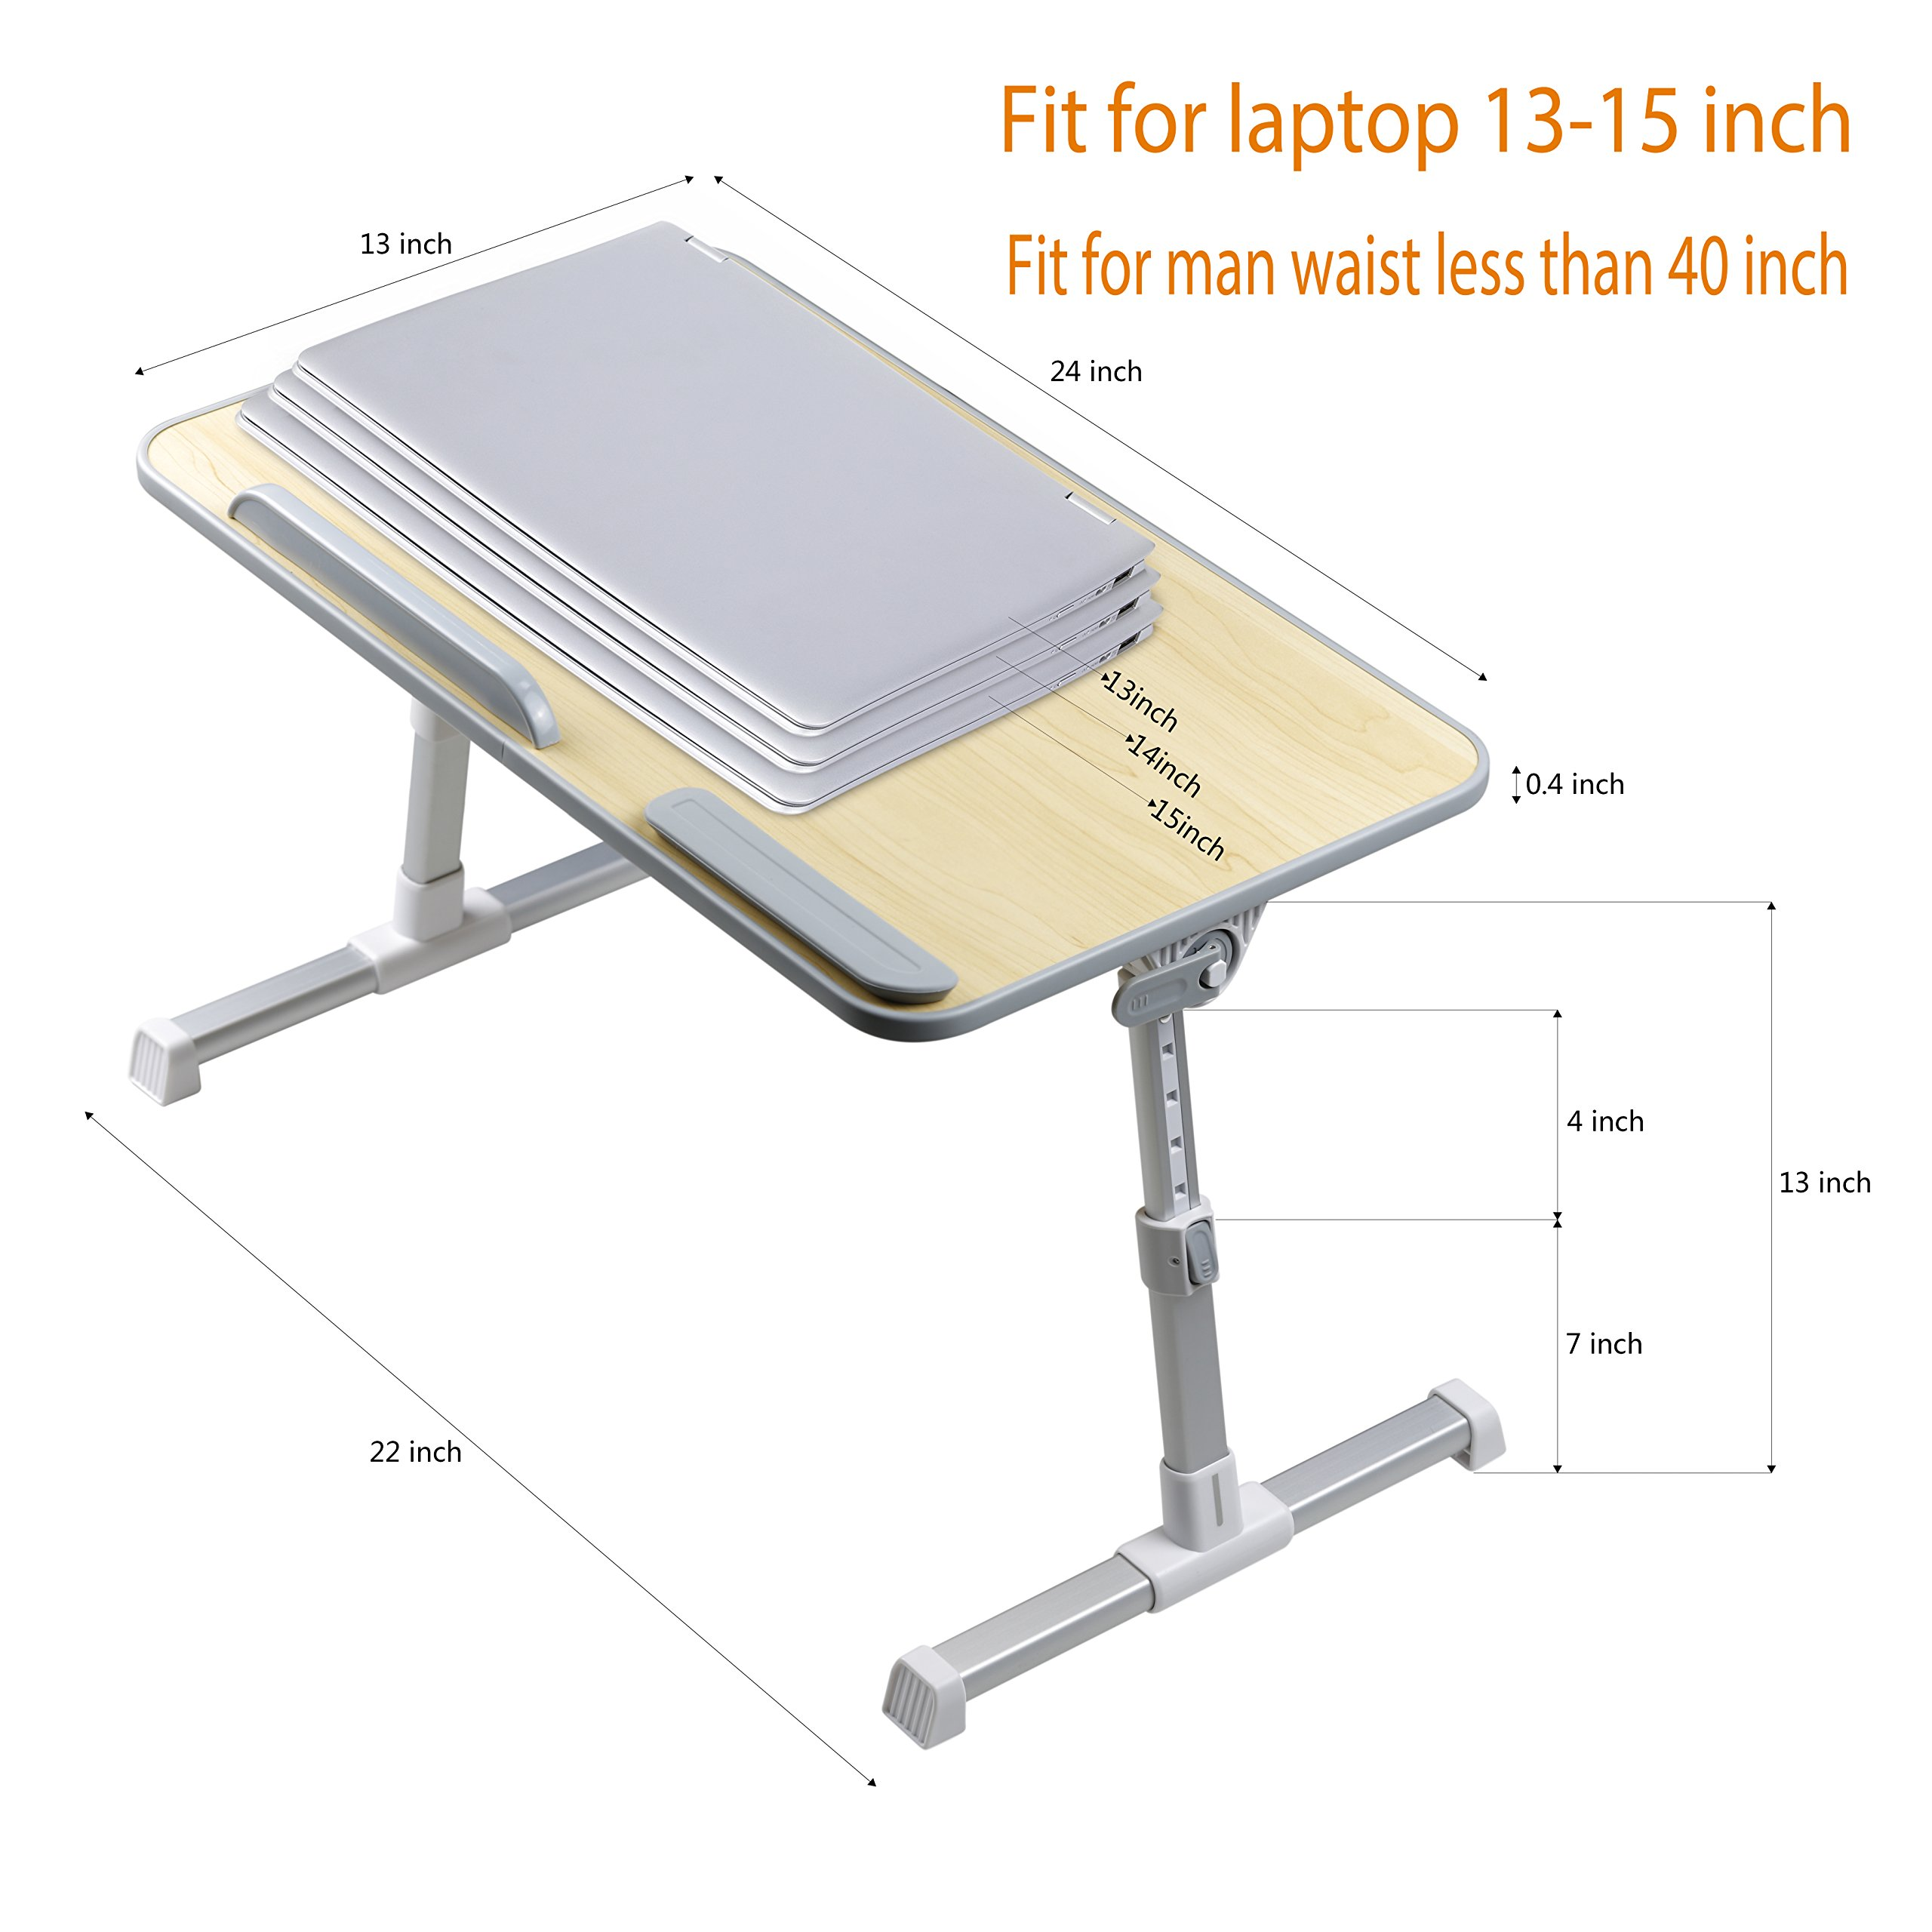 Adjustable Laptop Stand for Desk Bed Couch,Fit for 13-15inch Laptop,Foldable and Portable,Comfortable Ideal for Sit/Stand Lying Working by Aplomb (Image #3)